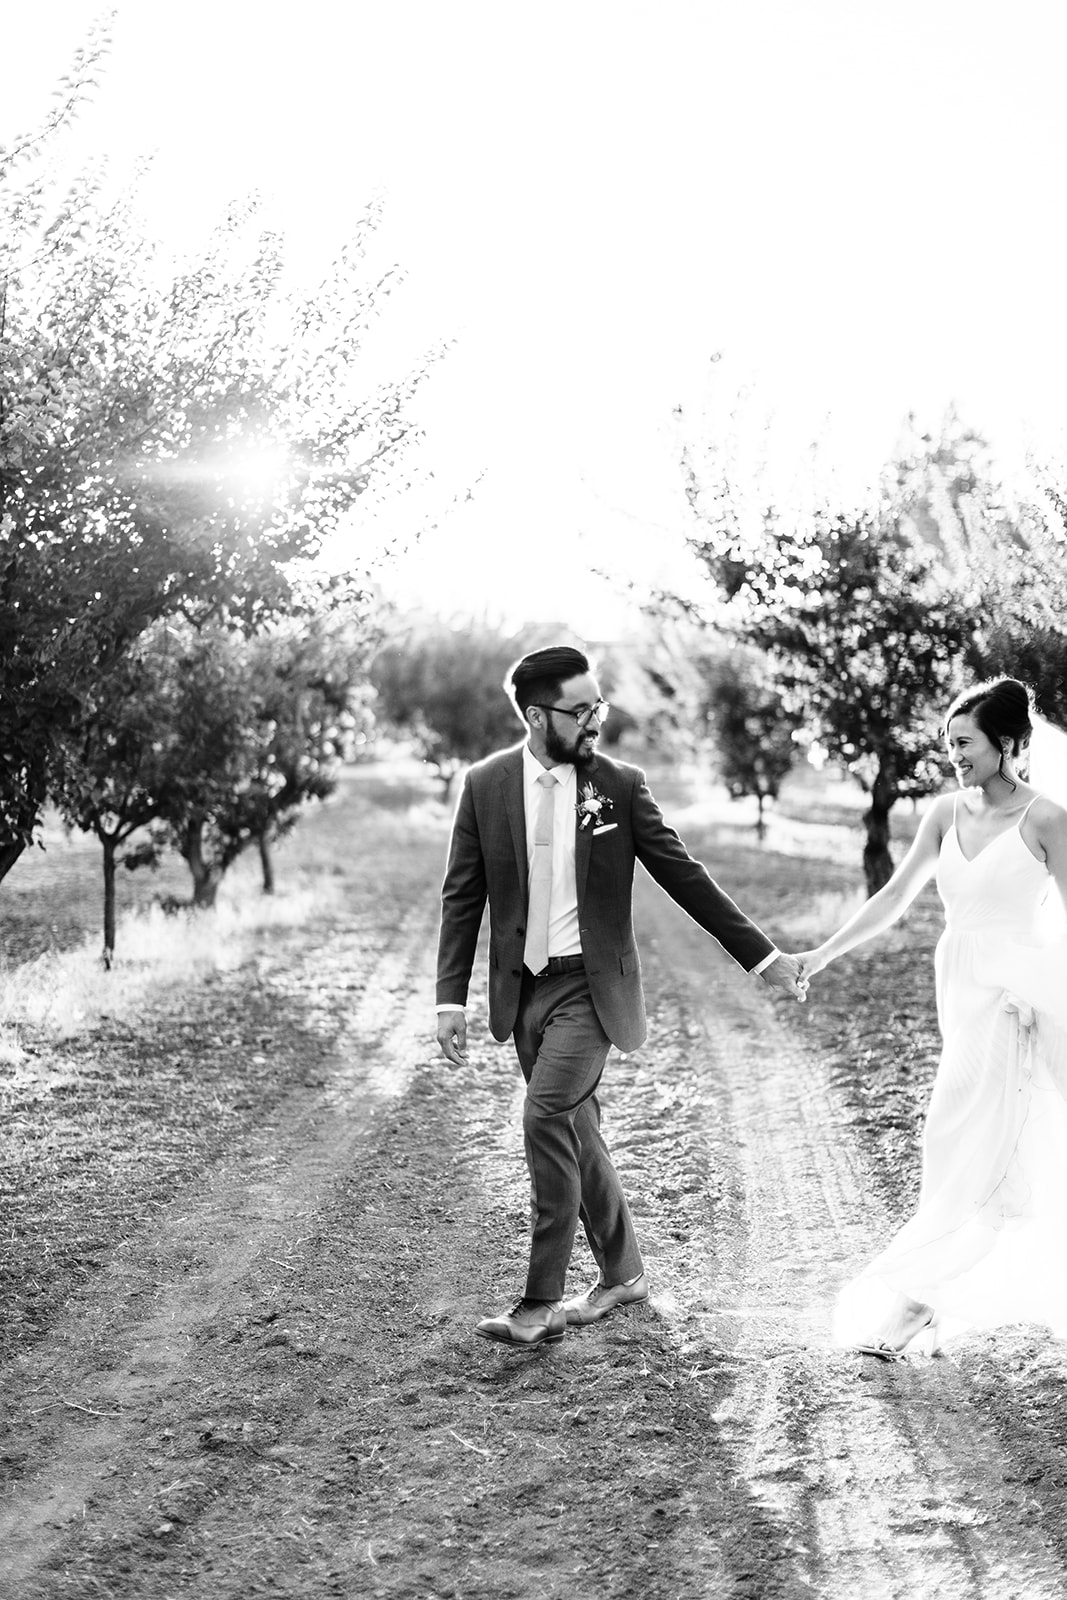 Los-Altos-History-Museum-Wedding_Orange-County-Wedding-Photographer_Clarisse-Rae-Photo-Video_86